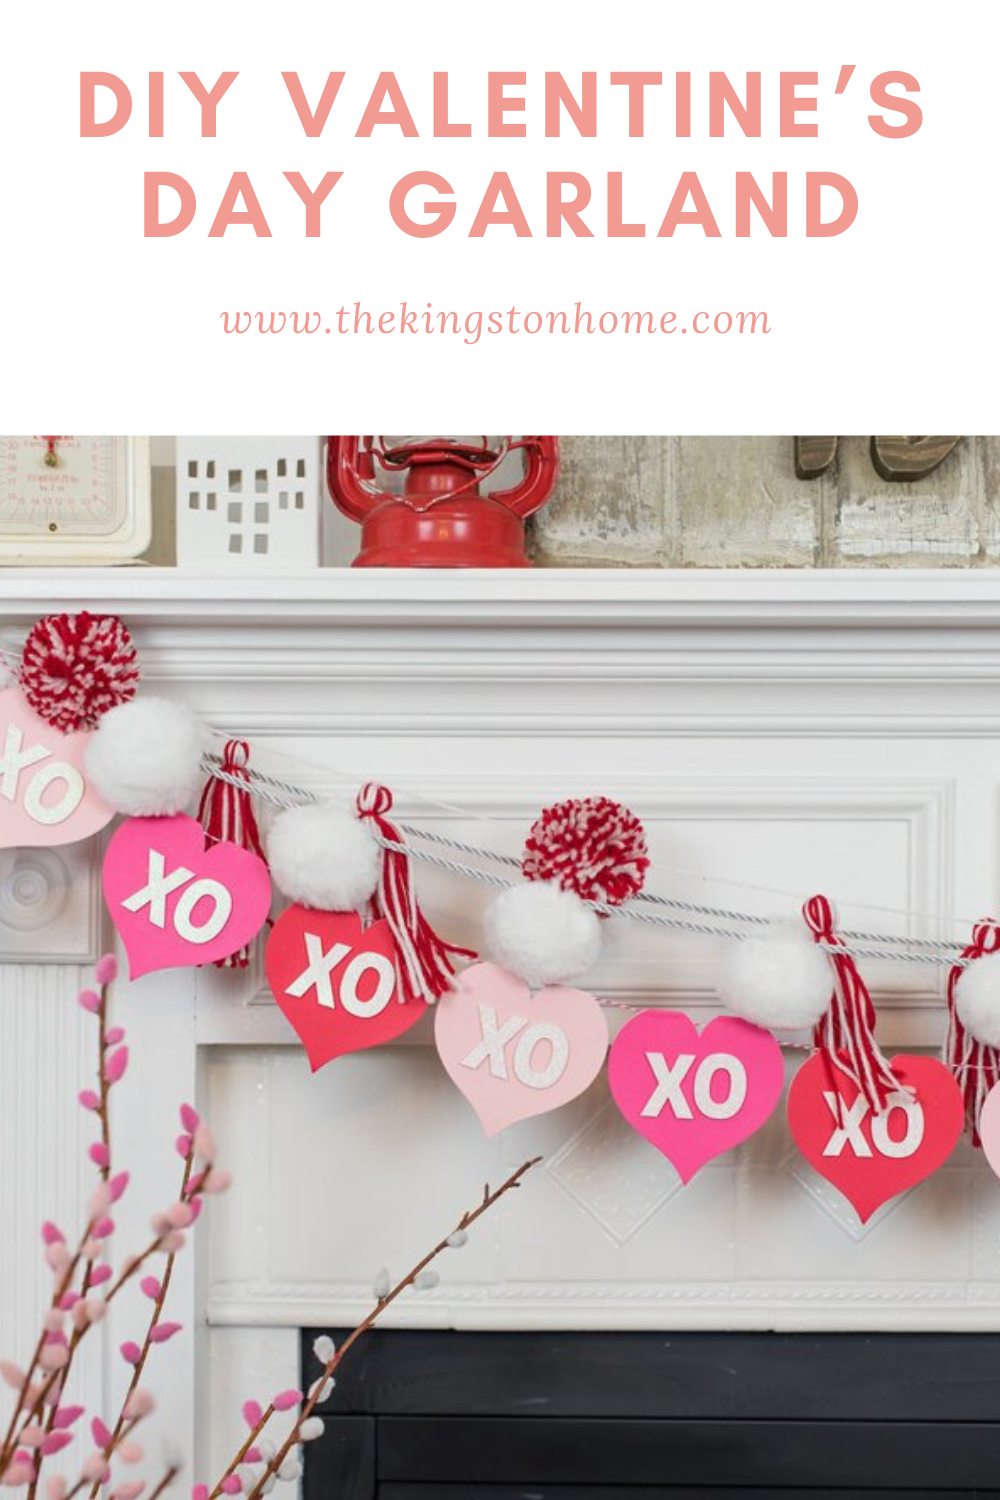 DIY Valentine's Day Garland - The Kingston Home: Turn heart-shaped cards from Michaels into the perfect Valentine's Day Garland with the help of the Cricut Maker! via @craftykingstons